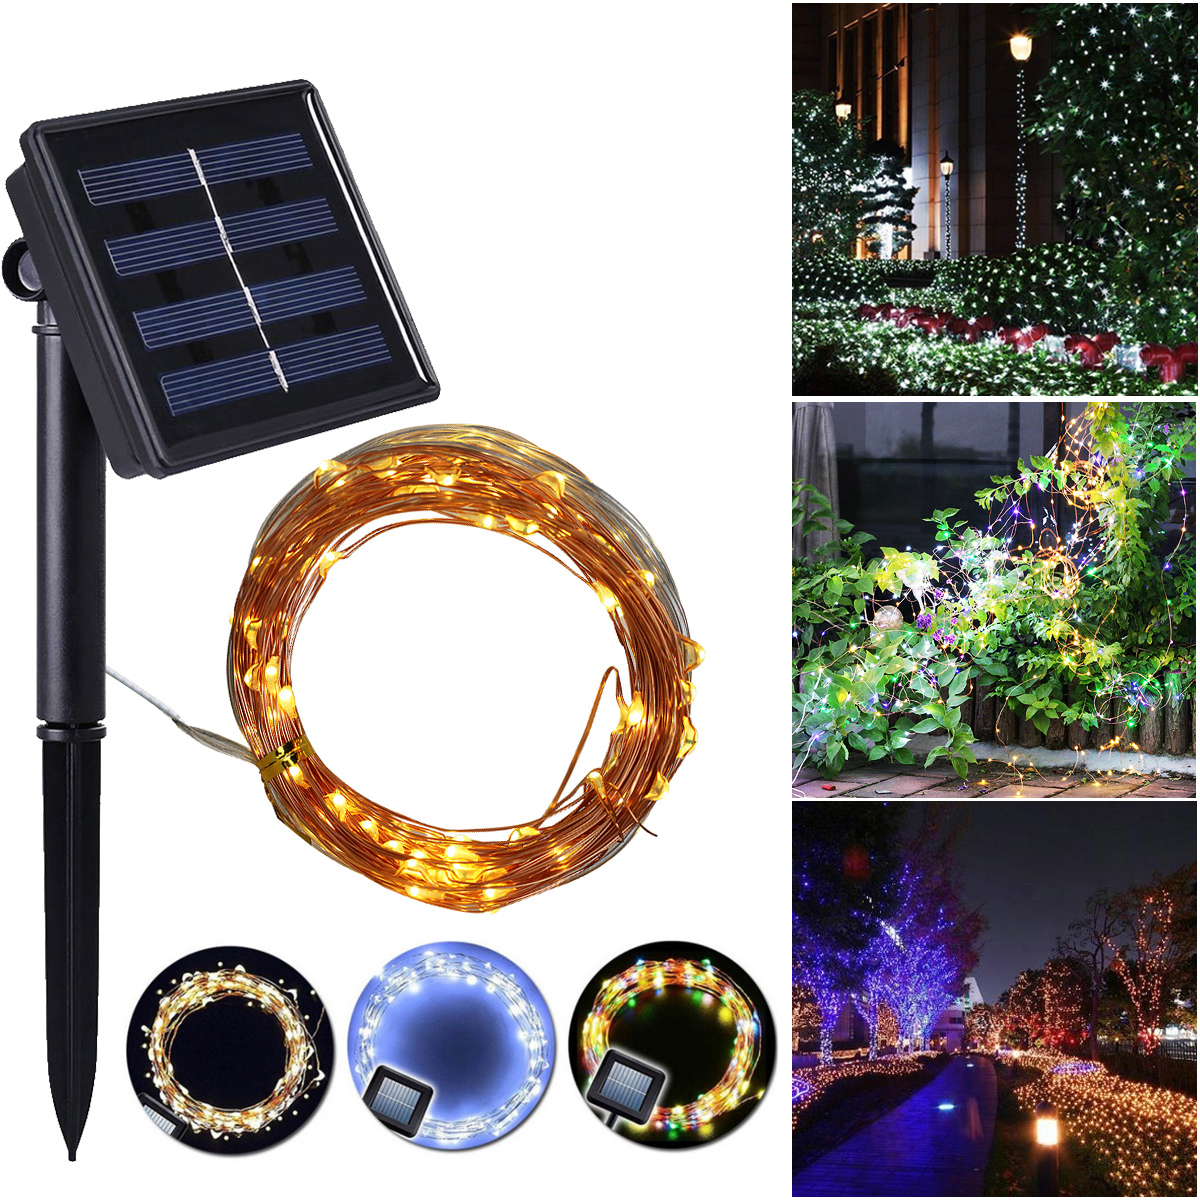 100 200led Solar Powered String Lights Outdoor Waterproof Copper Wire Lights For Garden Festival Decoration Lighting Strings Aliexpress